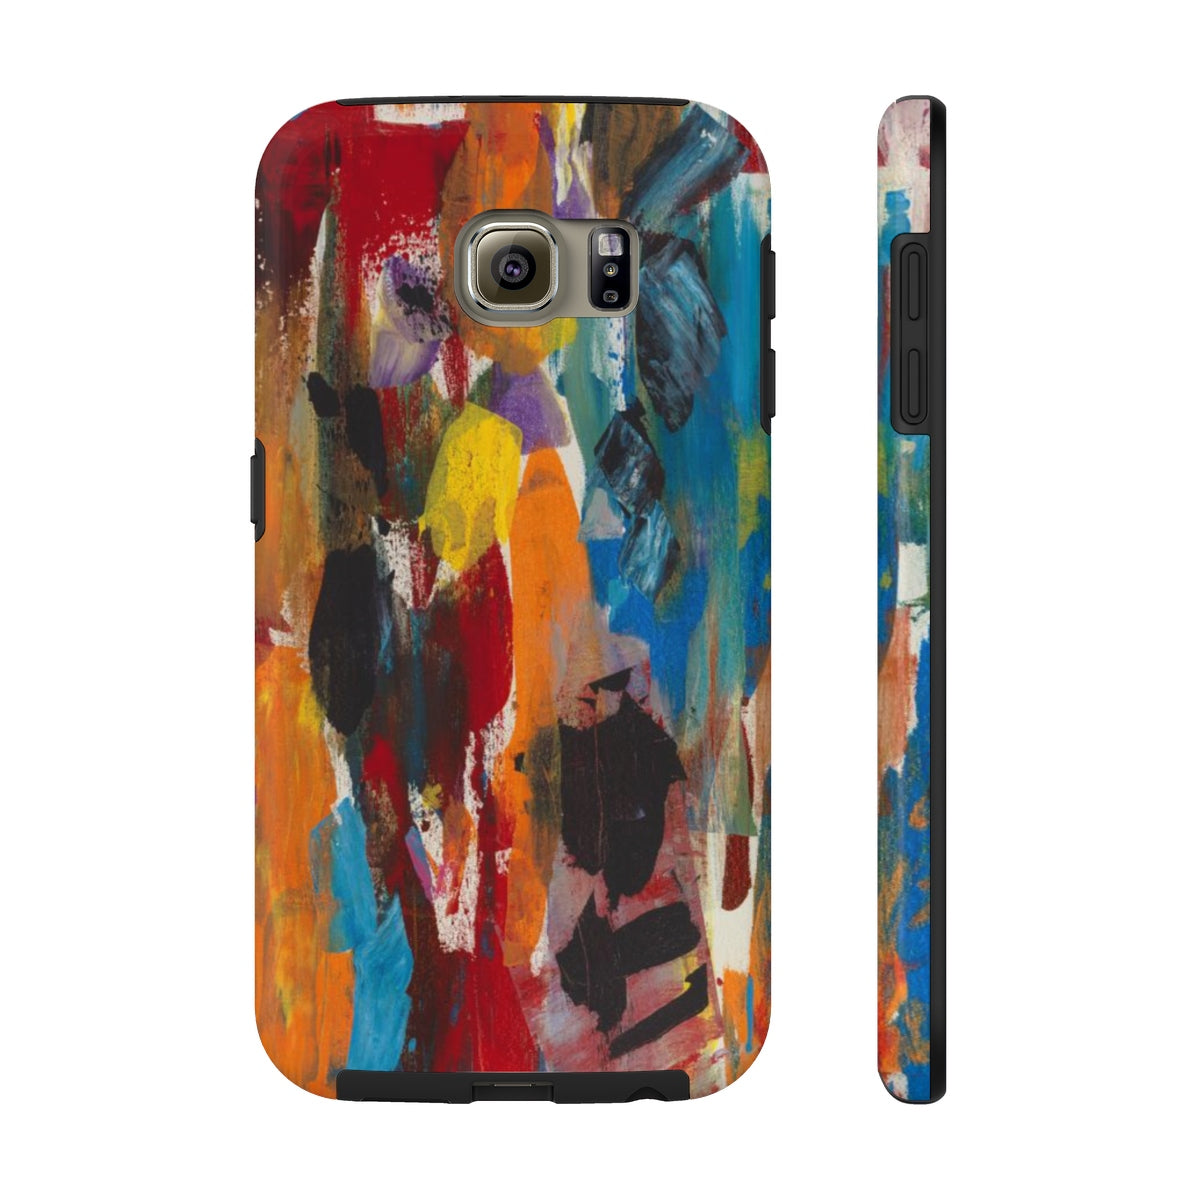 COLOR FUSION iPhone / Samsung Tough Phone Cases